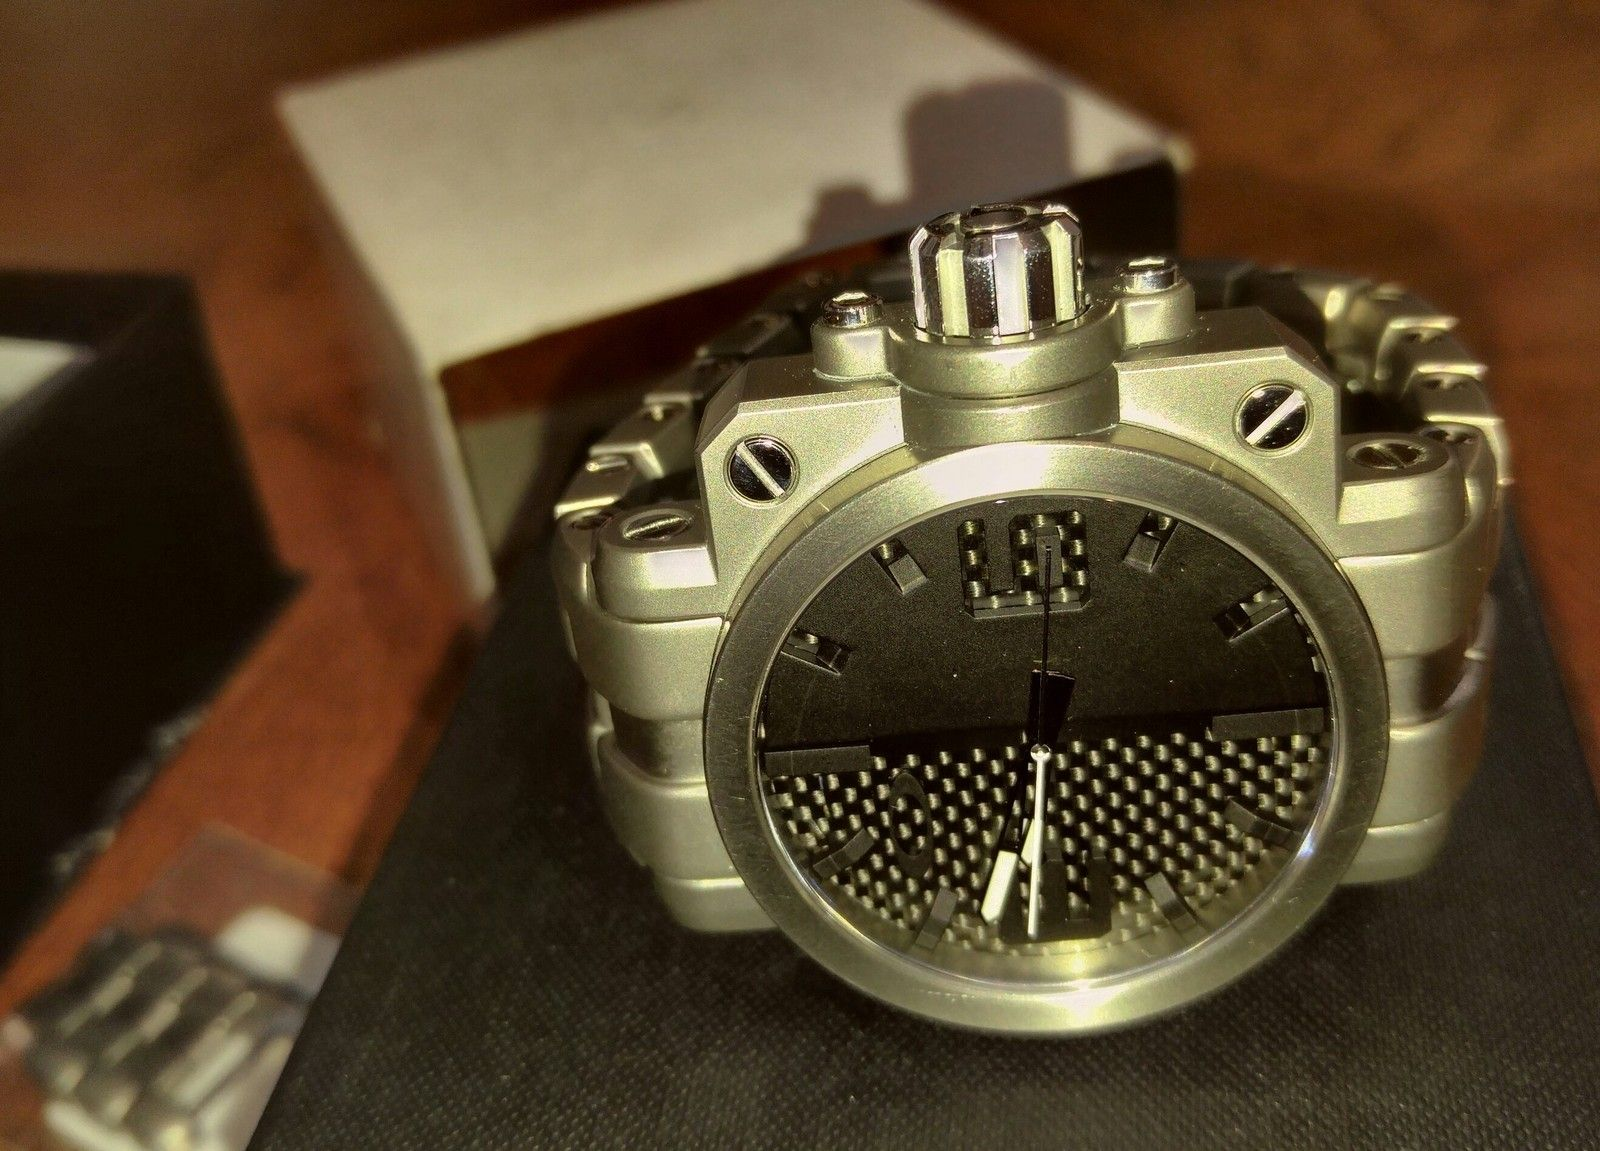 Gearbox with ti band - 20151130_151921-1.jpg